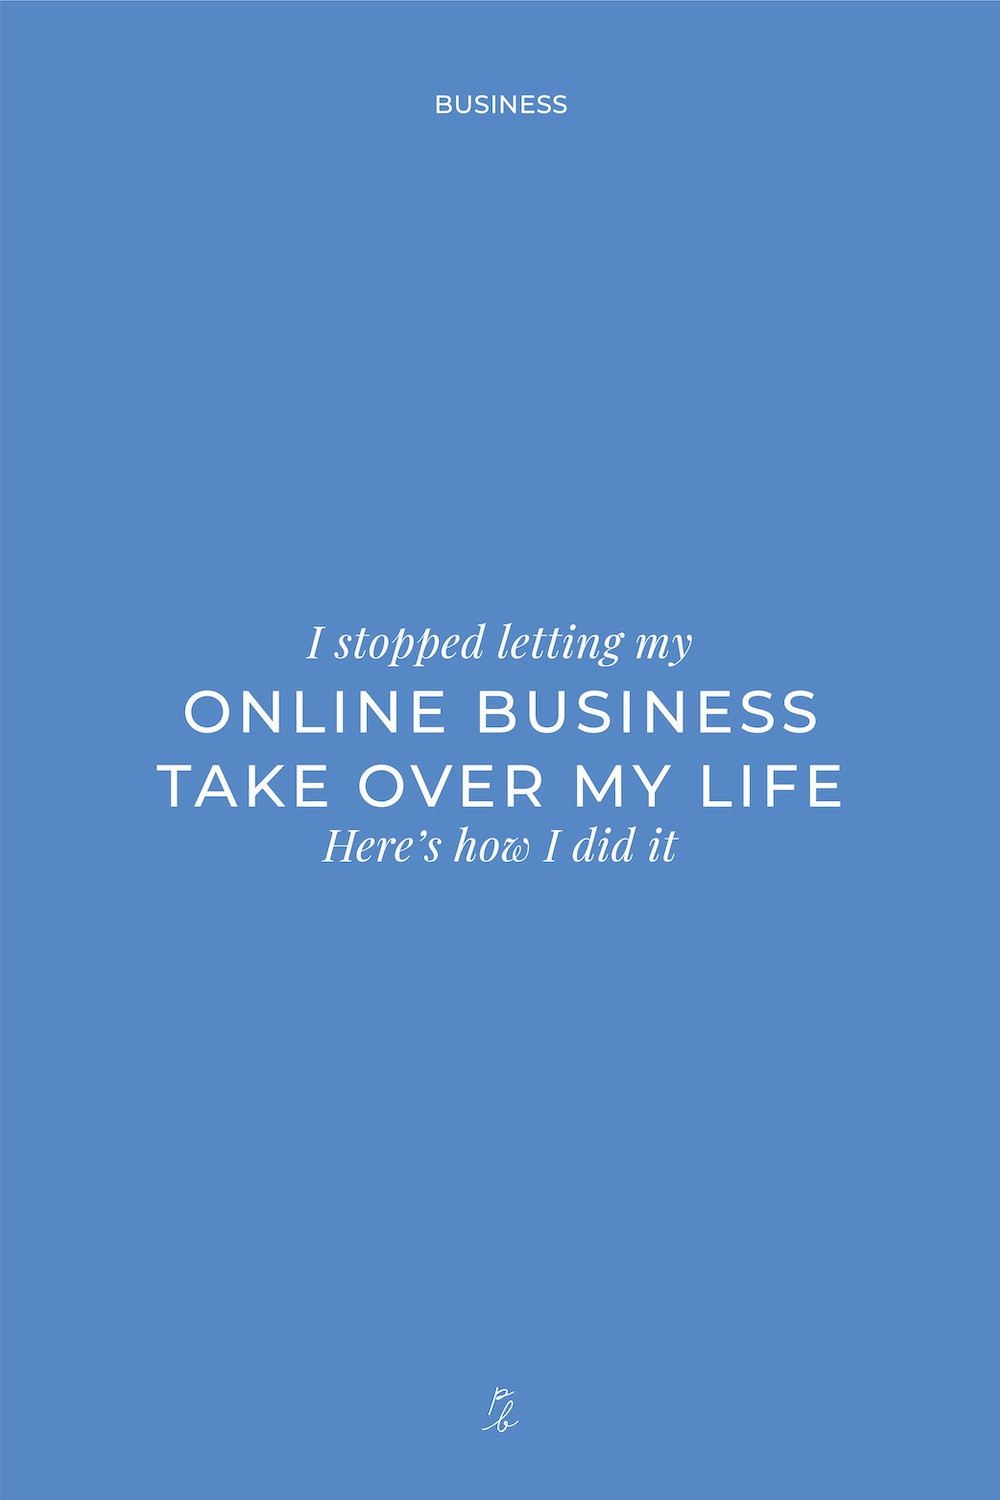 3-I stopped letting my online business take over my life--Here's how I did it.jpg